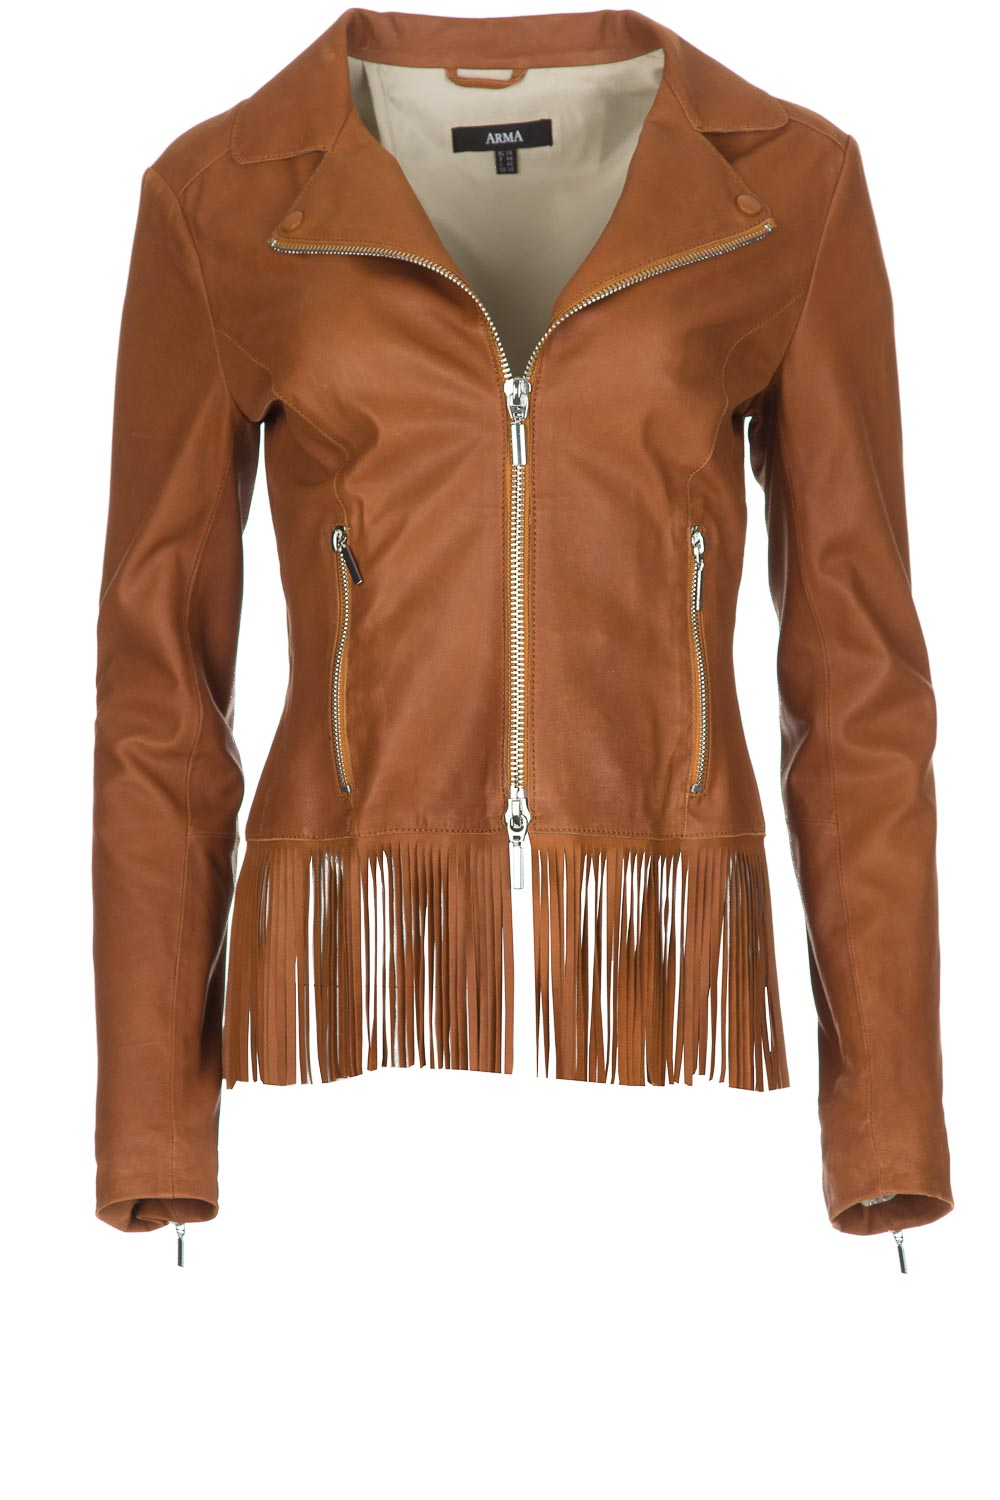 230dd7689a3f 100% goat leather jacket with fringes Galicie